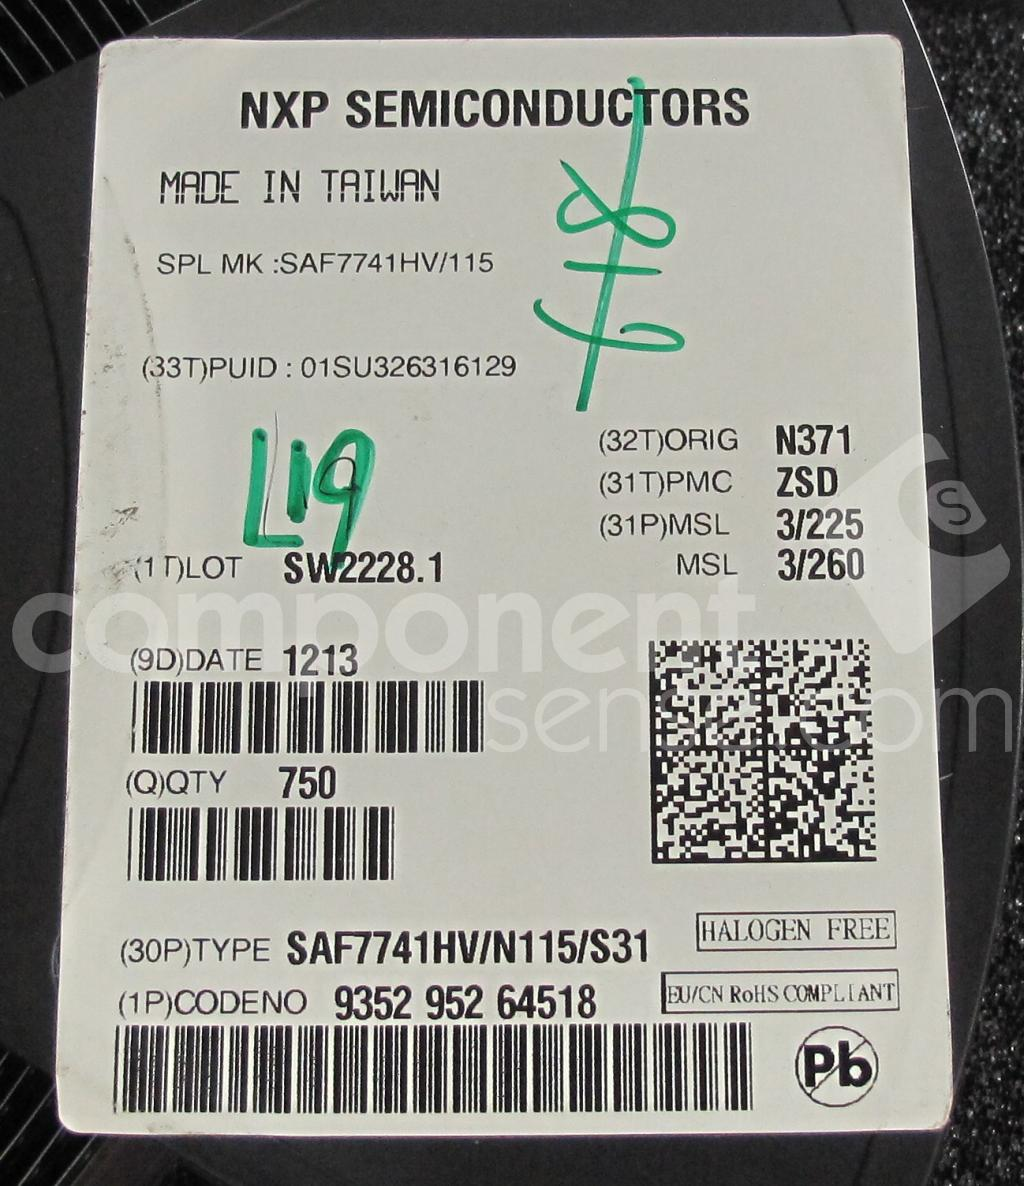 nxp semiconductors stock pitch Qualcomm increased the price of its tender offer to $12750 a share on feb 20, 2018, valuing nxp at about $44 billion the new end date for the purchase agreement was set on april 19 qualcomm is also due to report earnings for its third fiscal quarter after the us stock markets close on july 25.